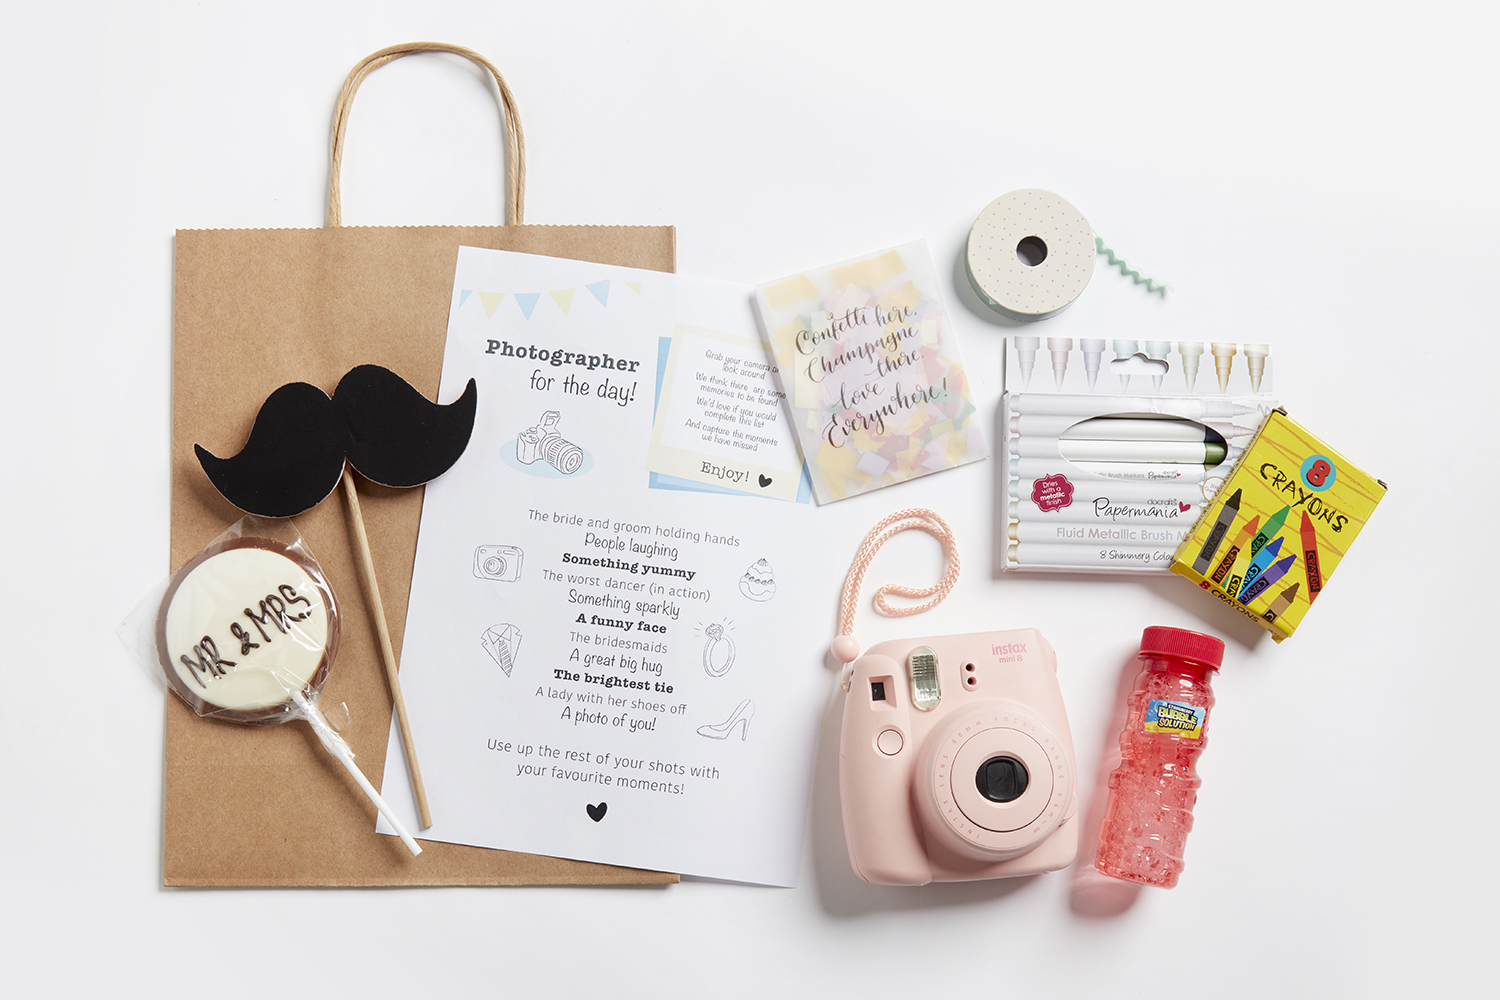 How To: Create Your Own Wedding Goodie Bags for Kids - Blog ...